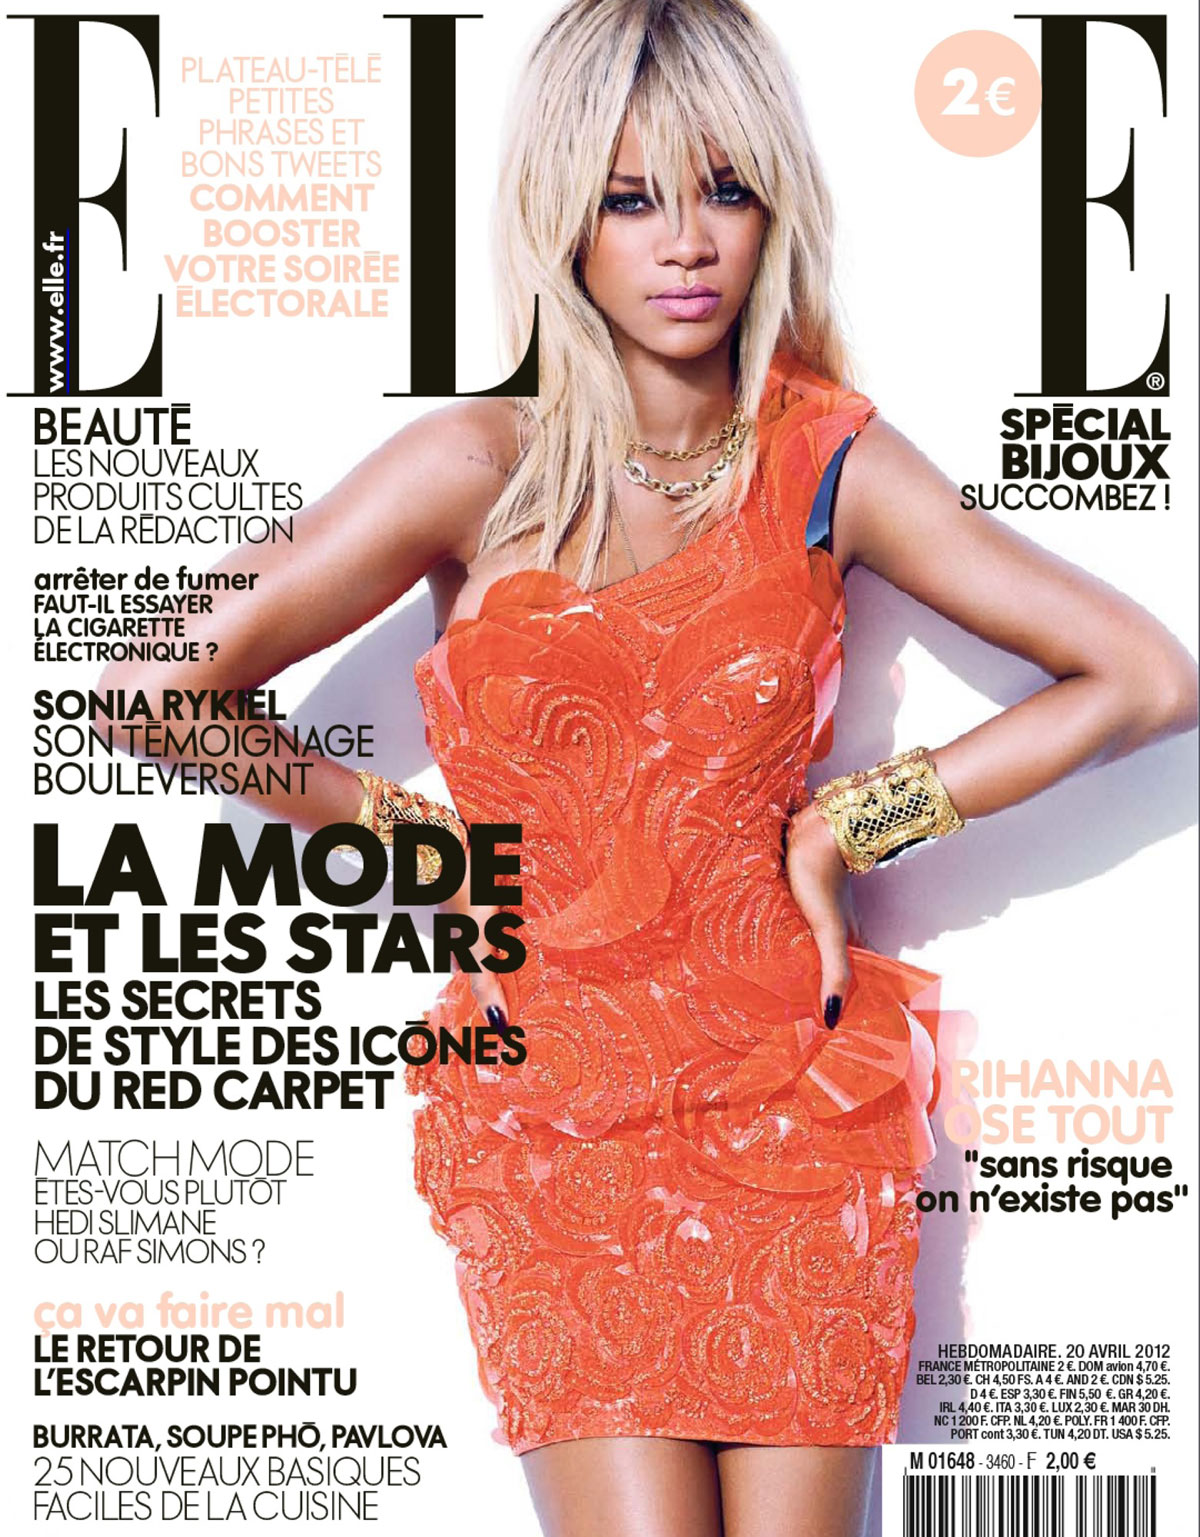 Elle Magazine France February March: RIHANNA In Elle Magazine, France April 2012 Issue